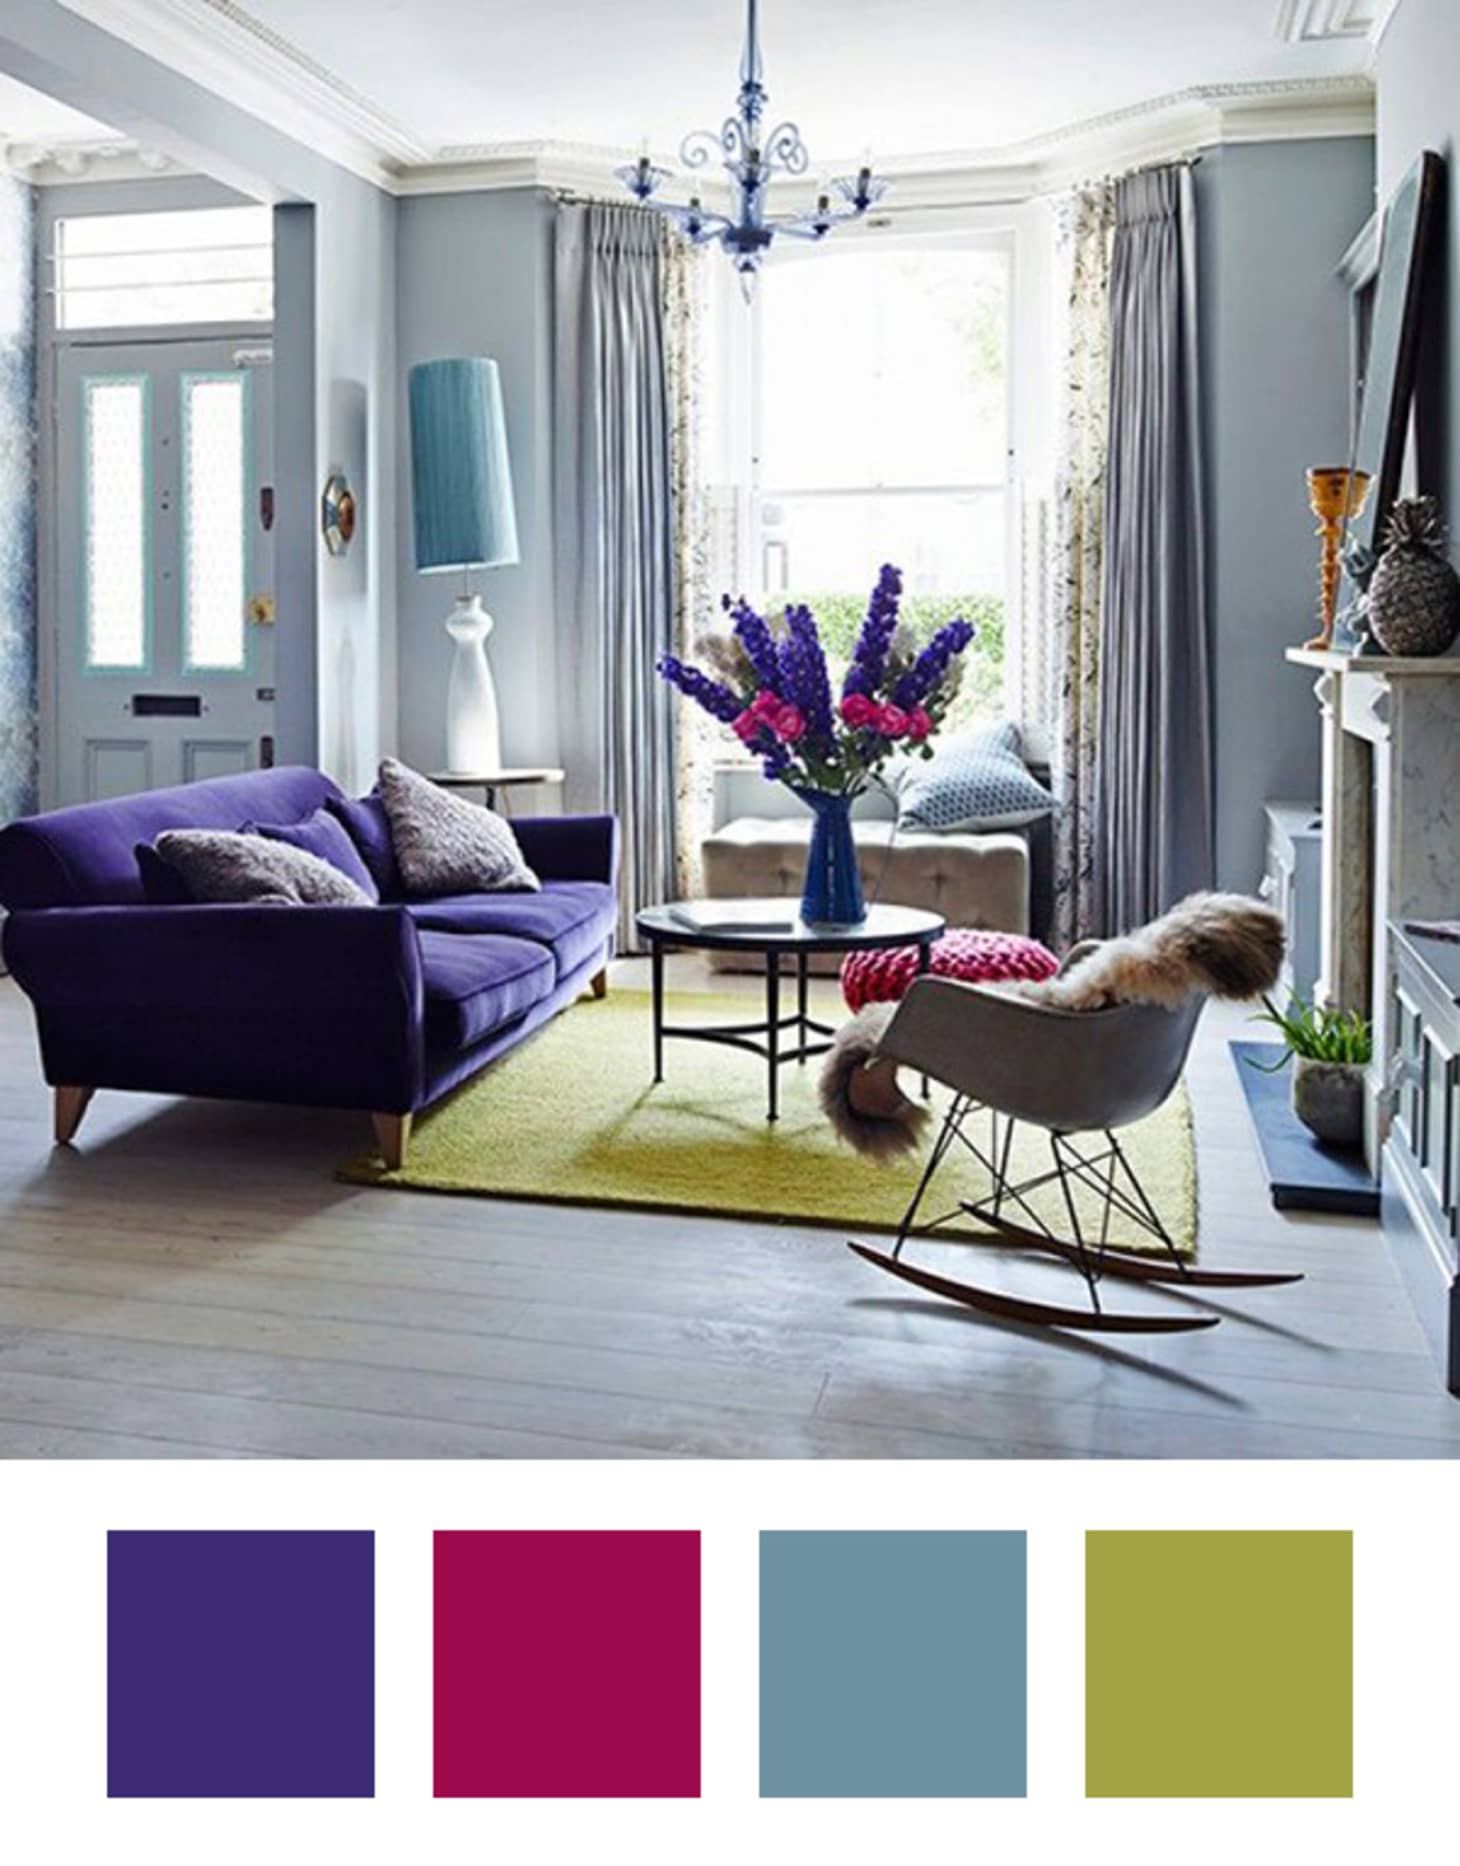 Violet Room Design: Decorating Ideas: 6 Colors To Pair With Purple At Home